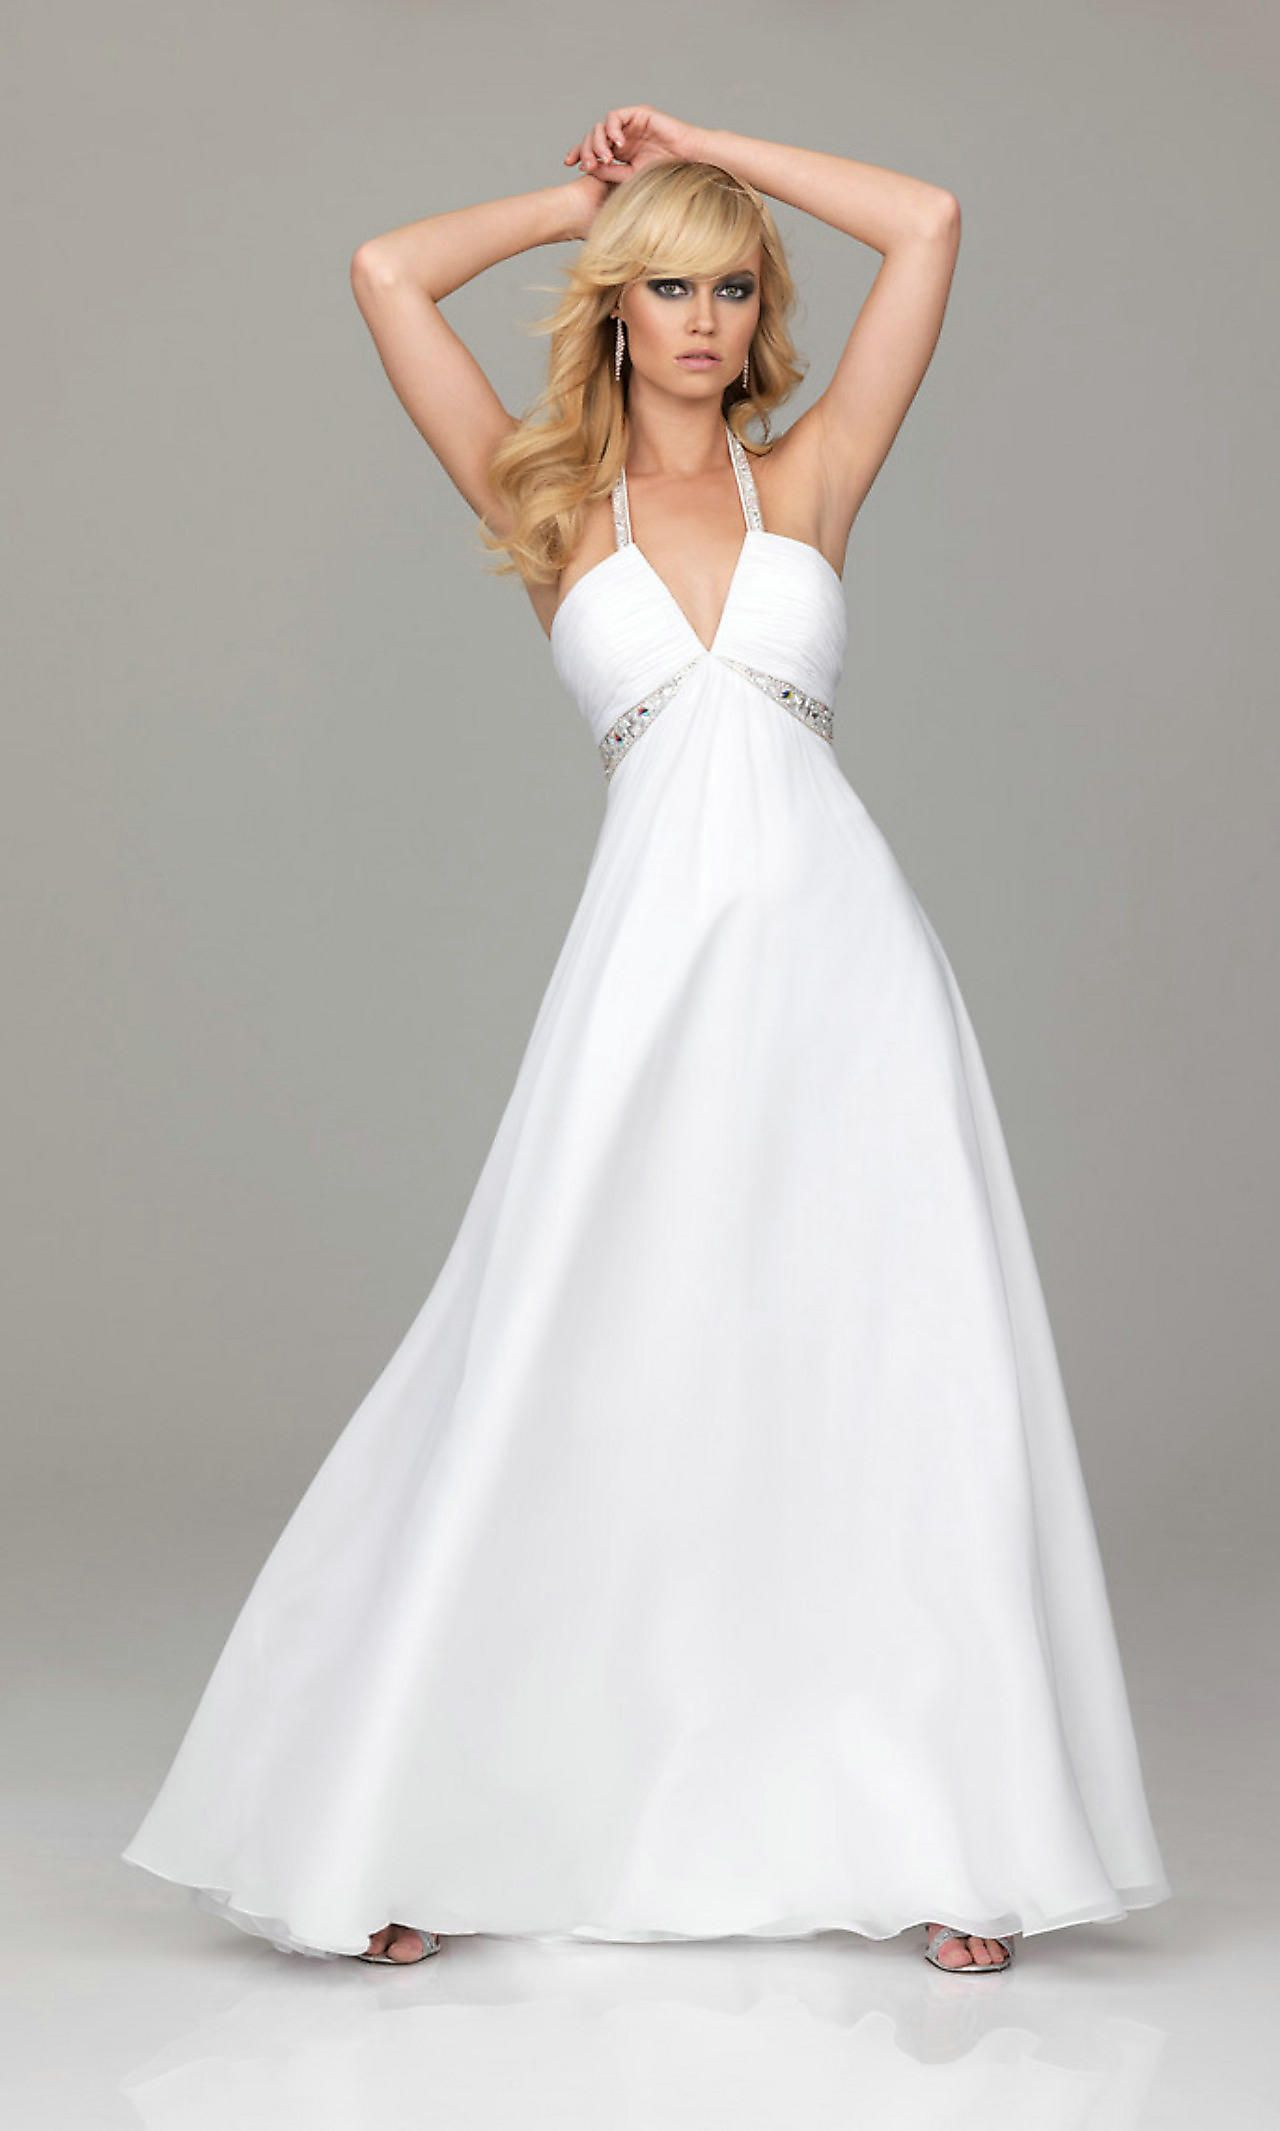 Collection White Formal Dress Pictures - Gift and fashion